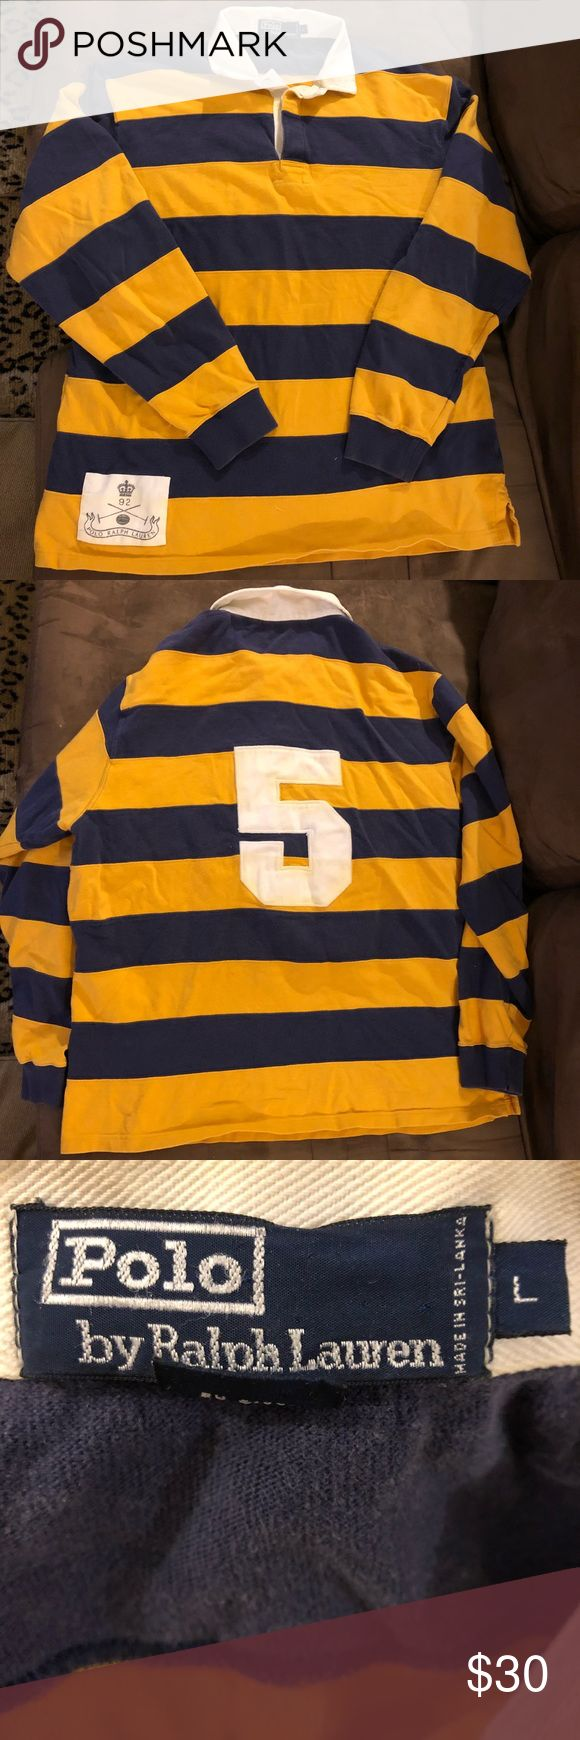 Polo Ralph Lauren Navy & Gold Stripe Rugby Shirt L Polo Ralph Lauren Navy Blue and Gold Stripe With White 5 Long Sleeve Rugby Shirt size L! Great condition! Please make reasonable offers and bundle! Ask questions! :) Polo by Ralph Lauren Shirts